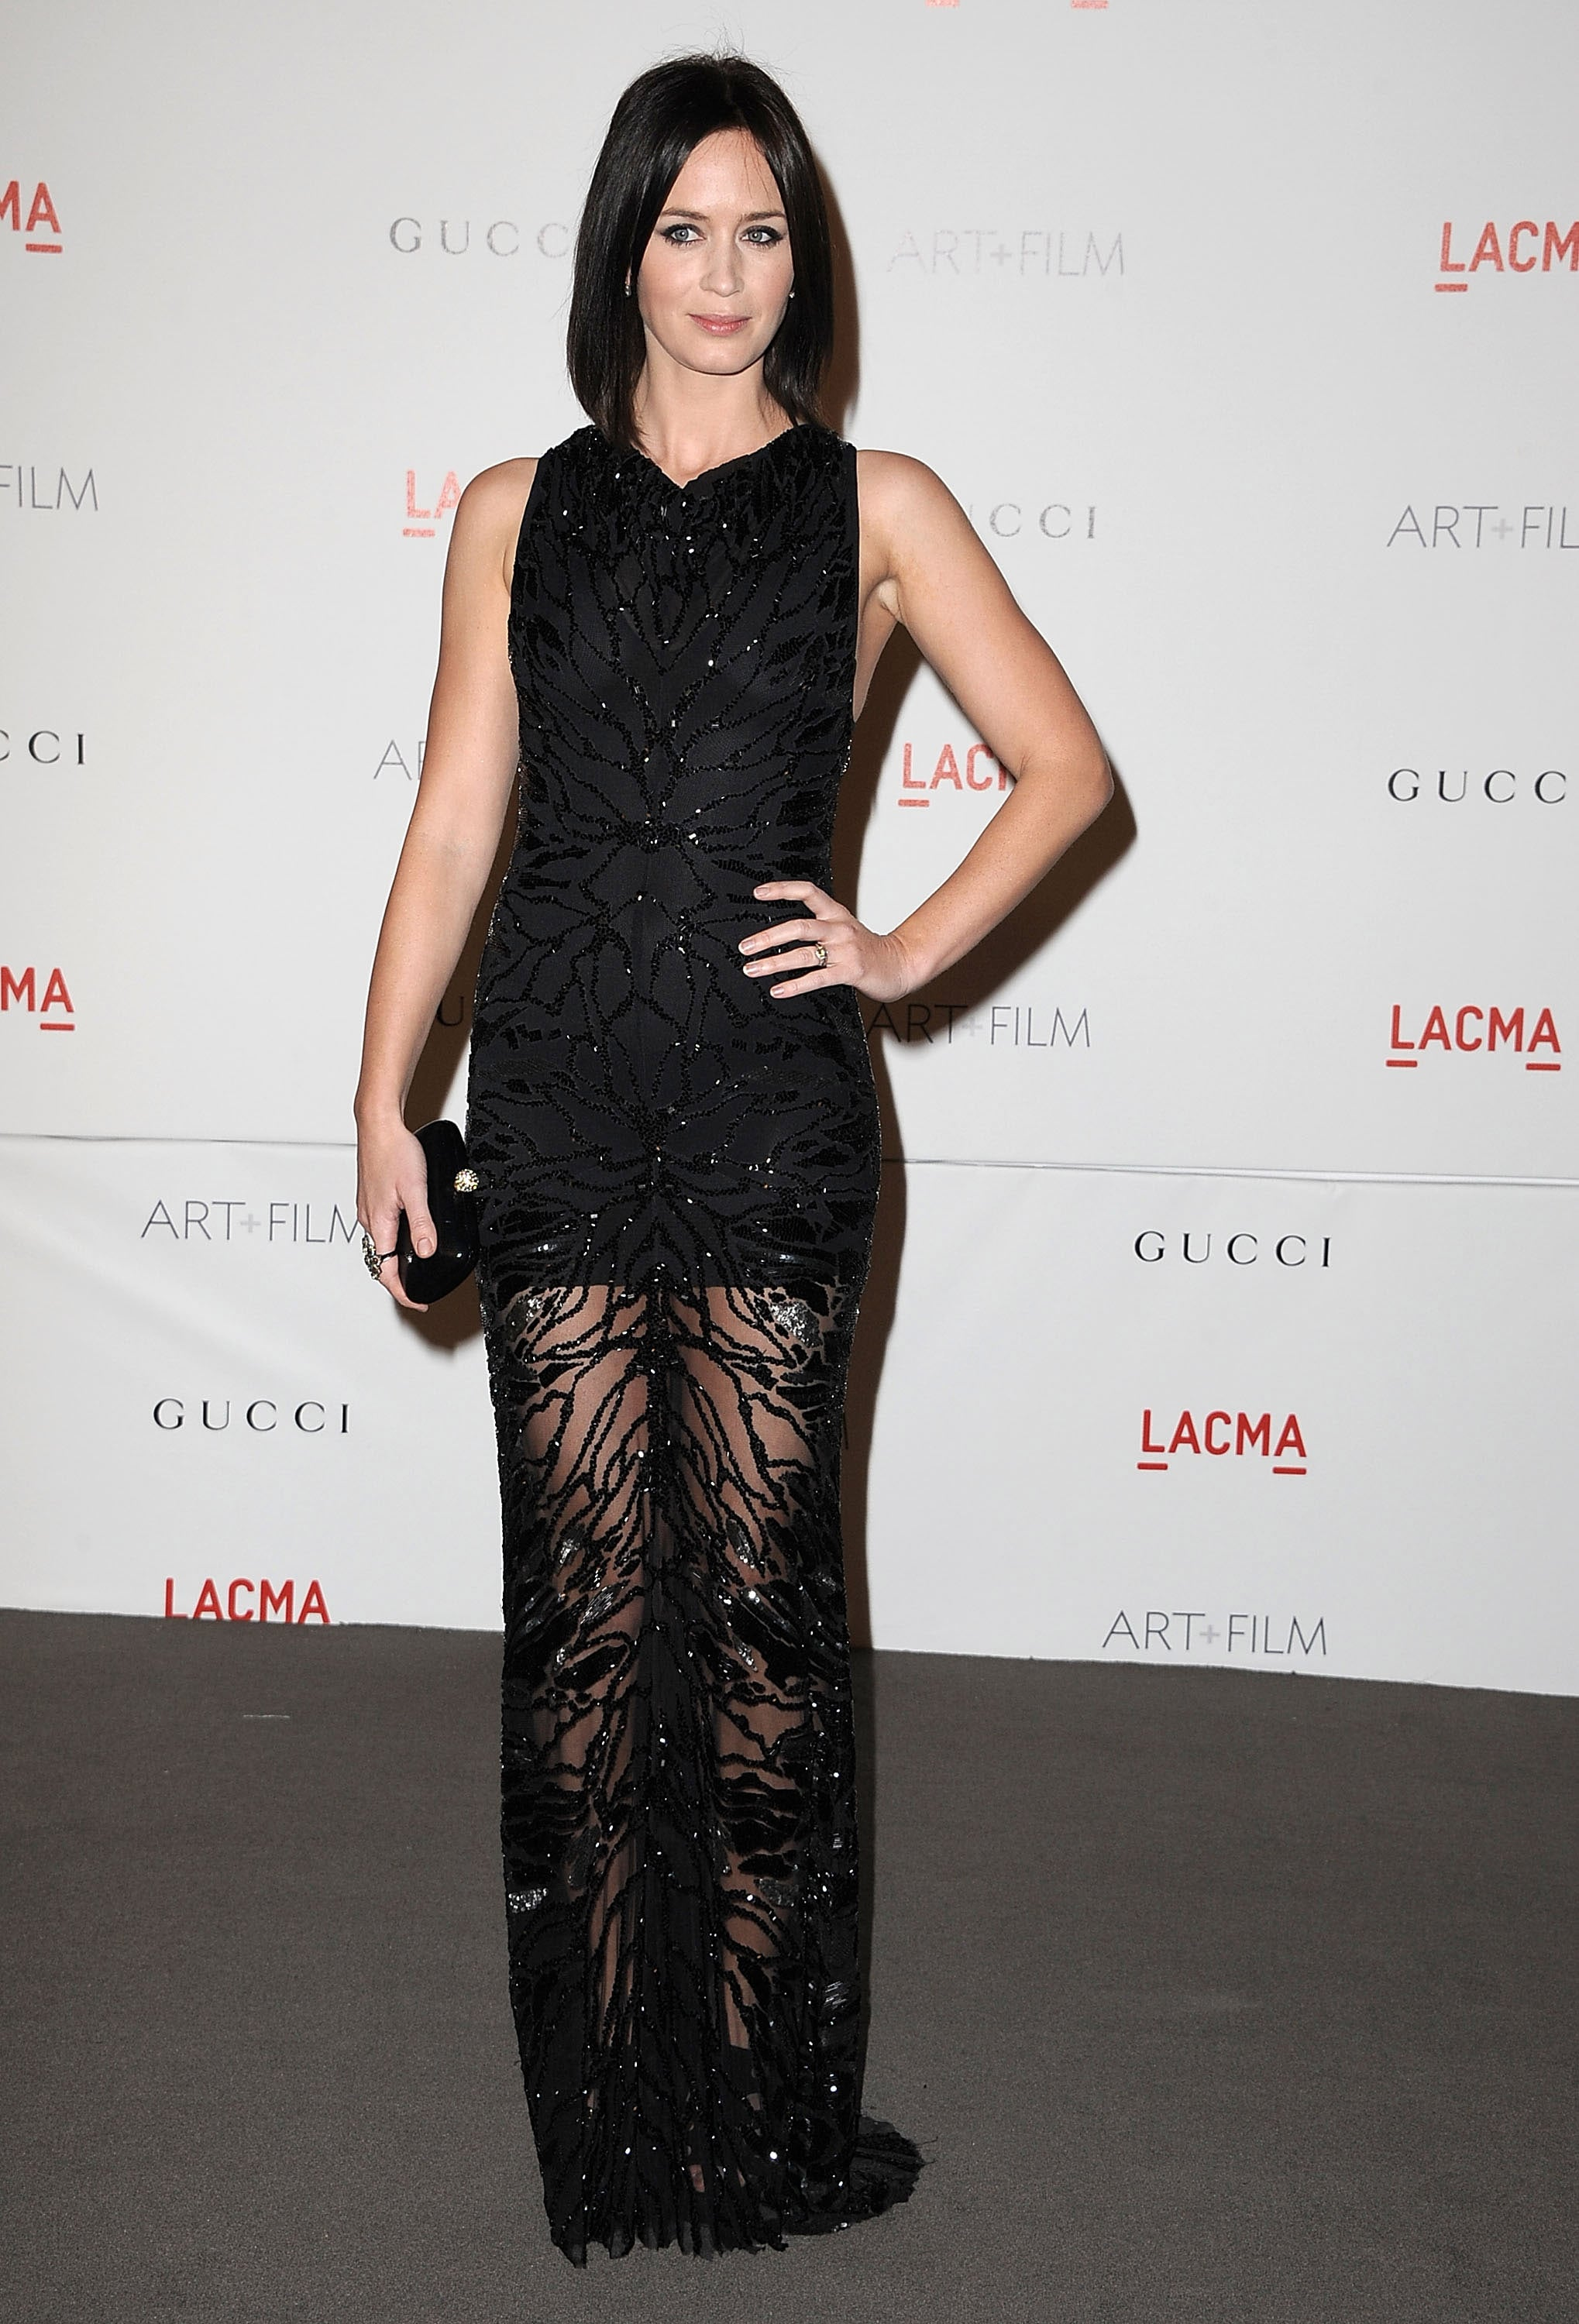 Emiliy Blunt at a LACMA bash in LA.